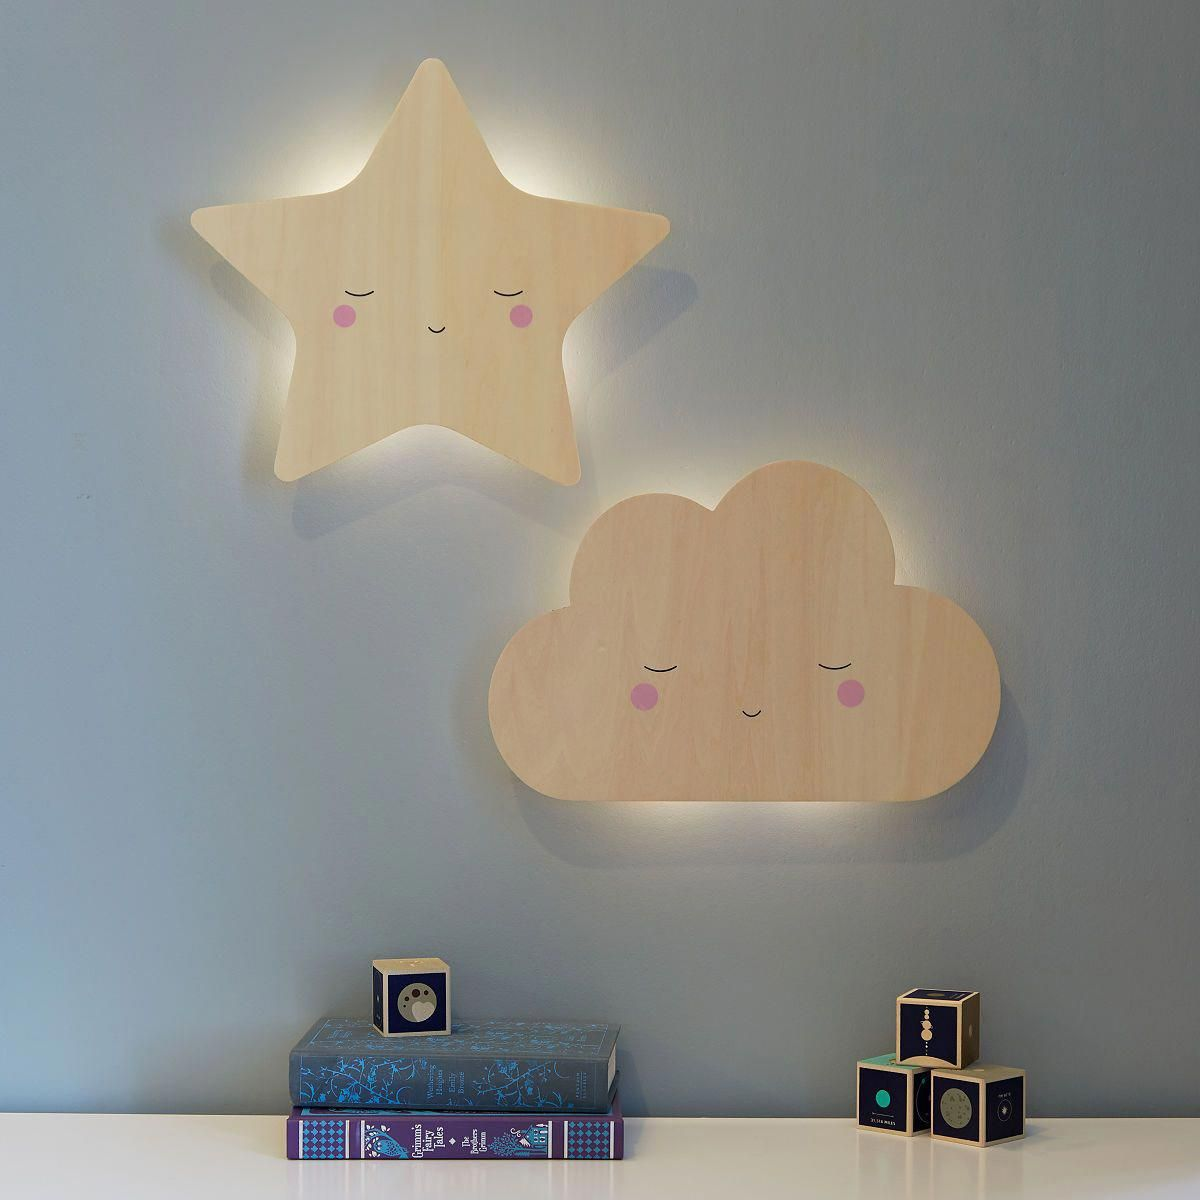 A Wall Mounted Night Light For A Child S Bedroom Casting A Soft